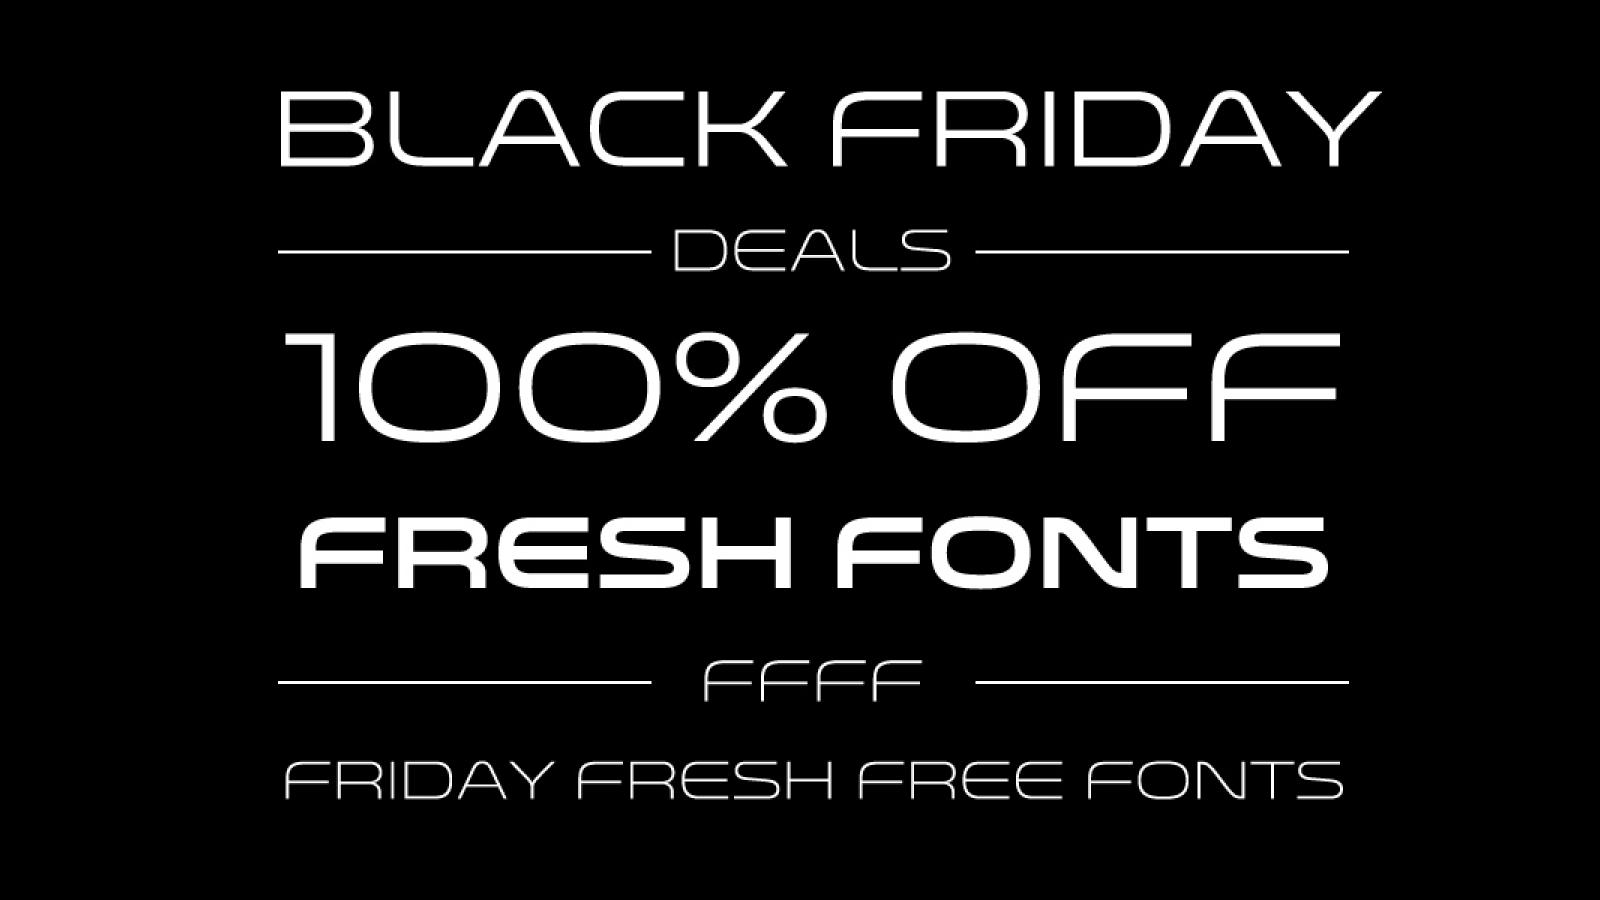 Black Friday Fresh Free Fonts - Monterey, Echinos Park Script, ...